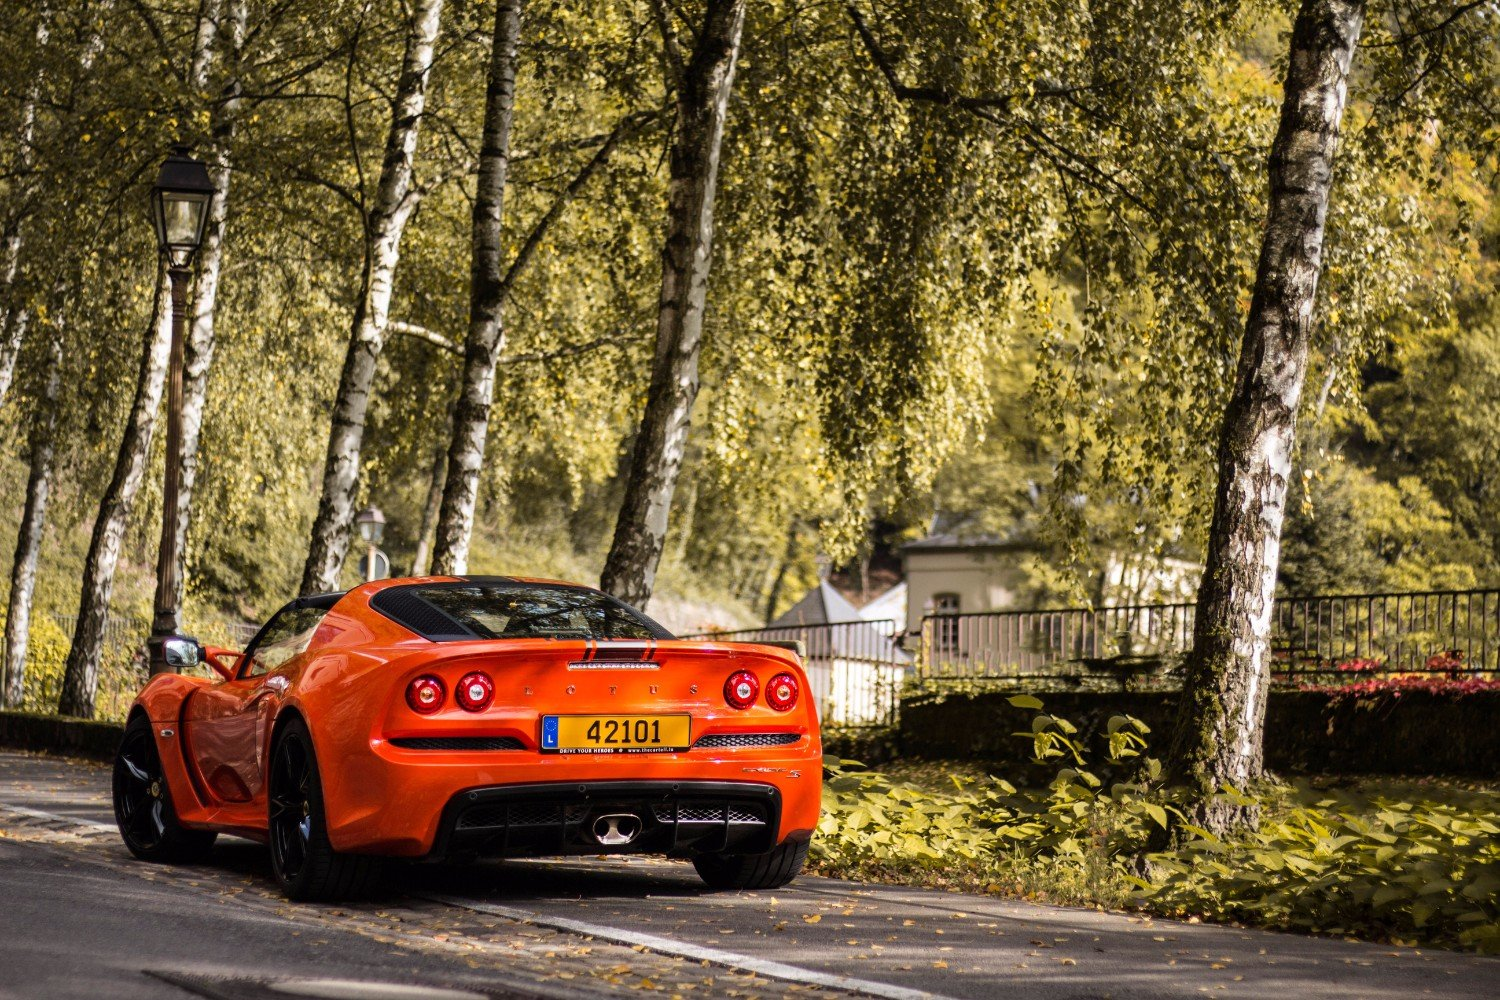 Lotus Exige S Roadster in Clausen